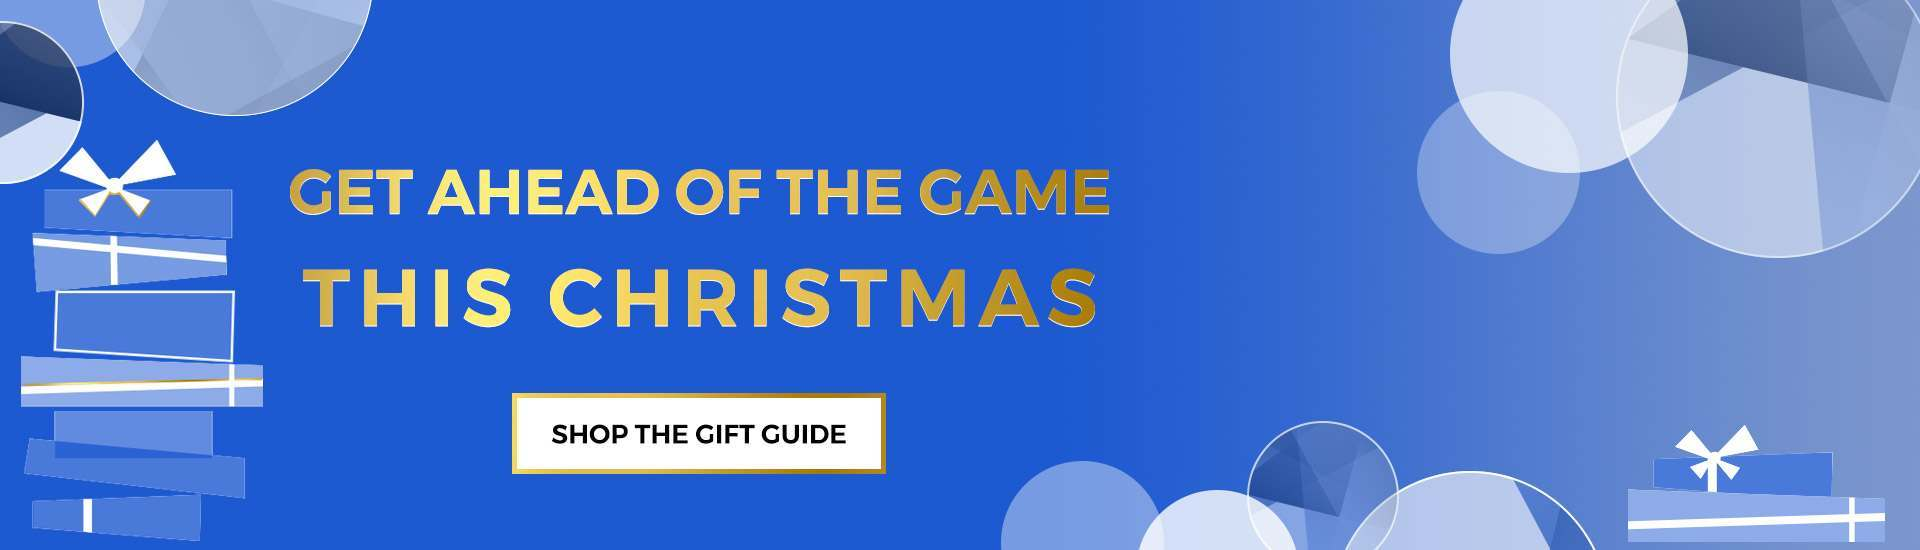 Get ahead of the game this christmas